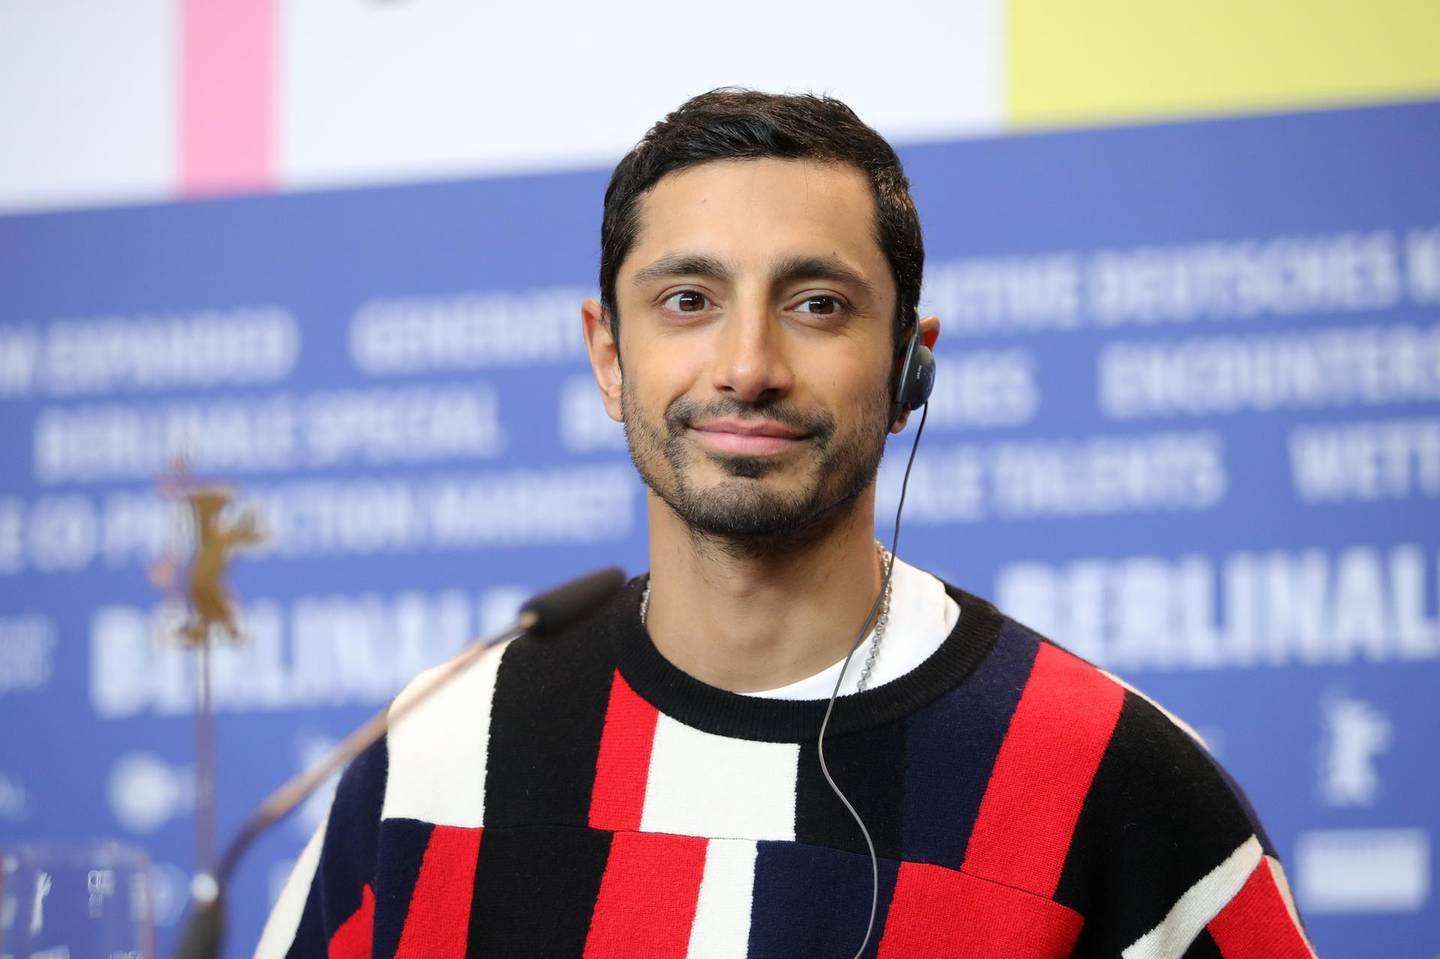 """BERLIN, GERMANY - FEBRUARY 21: Riz Ahmed is seen at the """"Mogul Mowgli"""" press conference during the 70th Berlinale International Film Festival Berlin at Grand Hyatt Hotel on February 21, 2020 in Berlin, Germany. (Photo by Andreas Rentz/Getty Images)"""